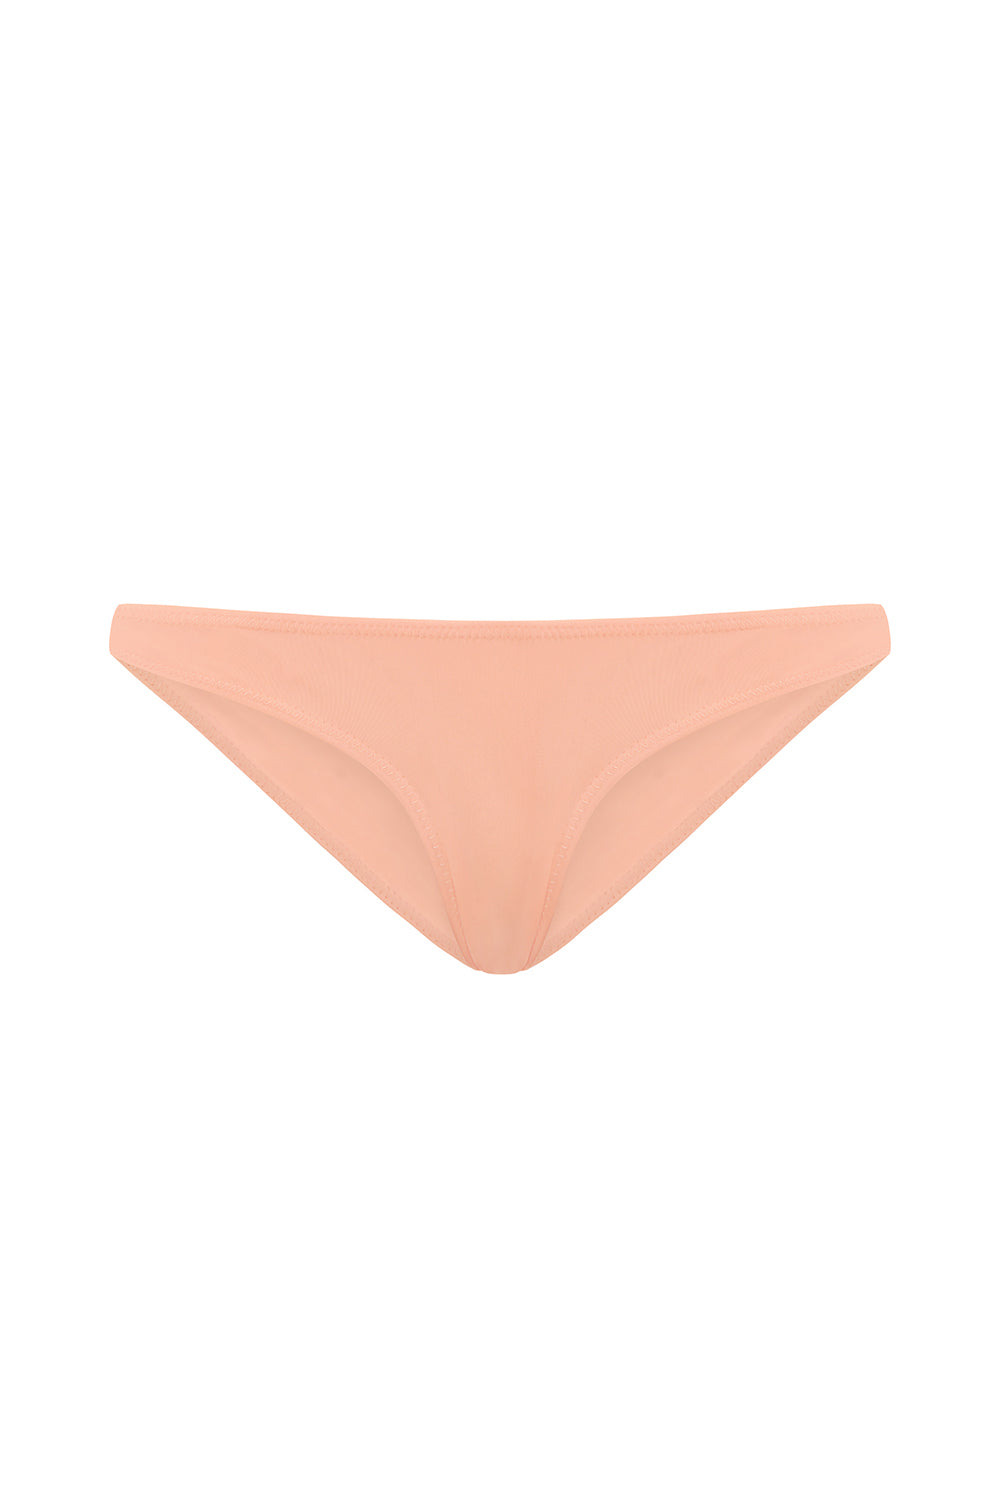 Everyday Bikini Pant - Peach